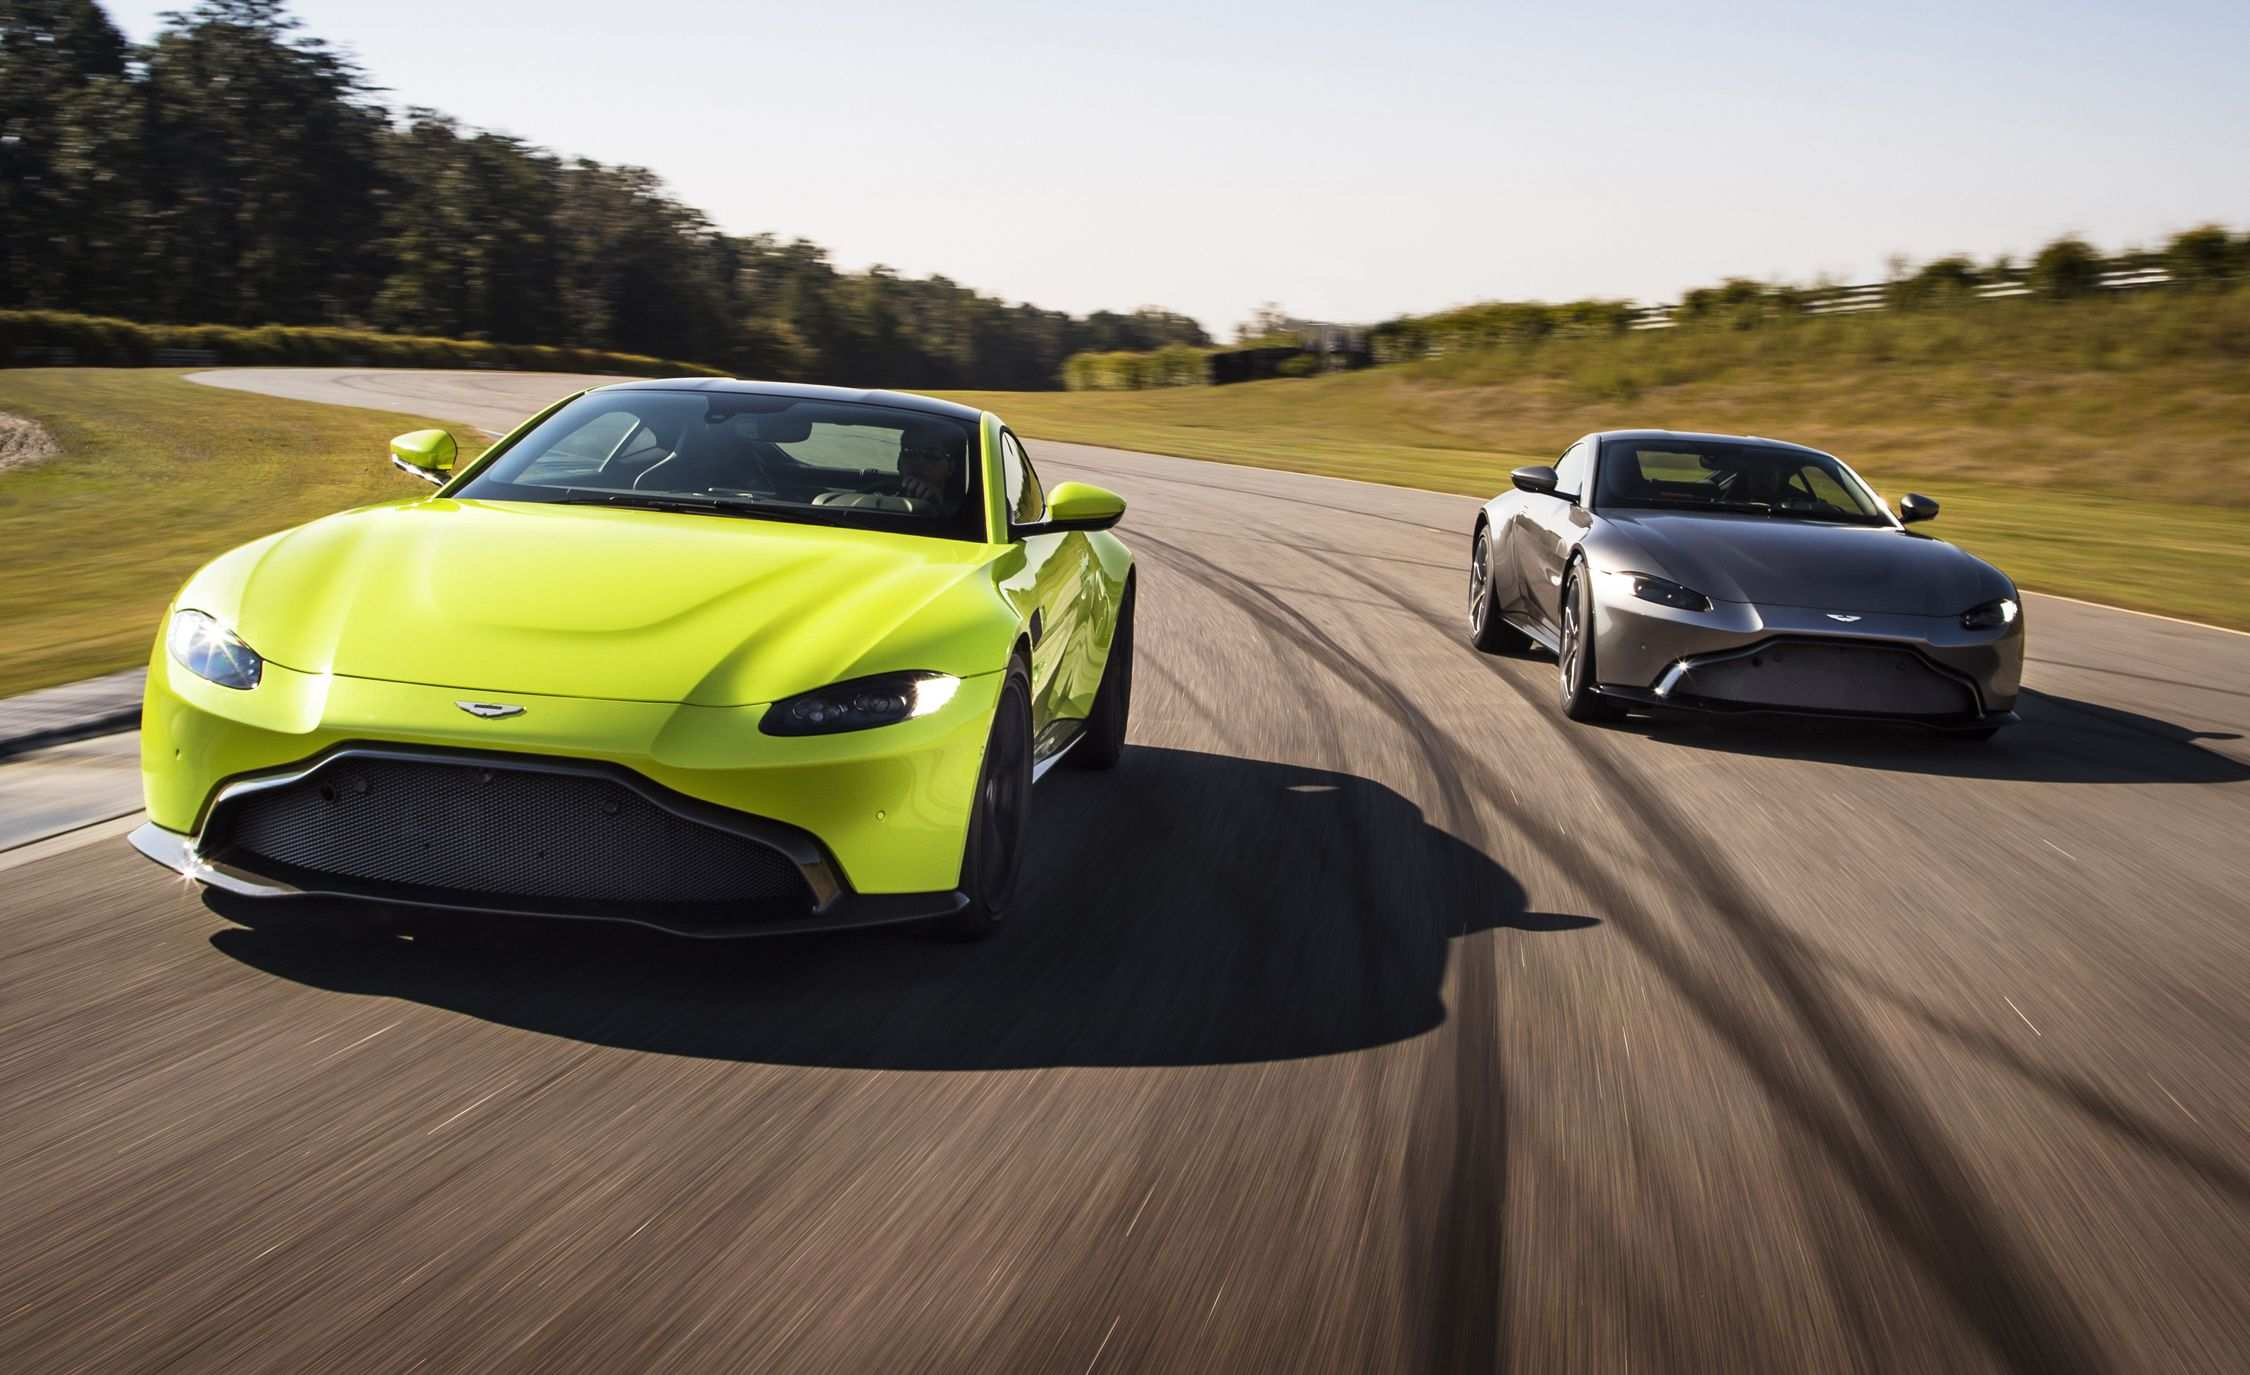 18 All New 2019 Aston Martin Vantage Predictably Stunning Pricing for 2019 Aston Martin Vantage Predictably Stunning